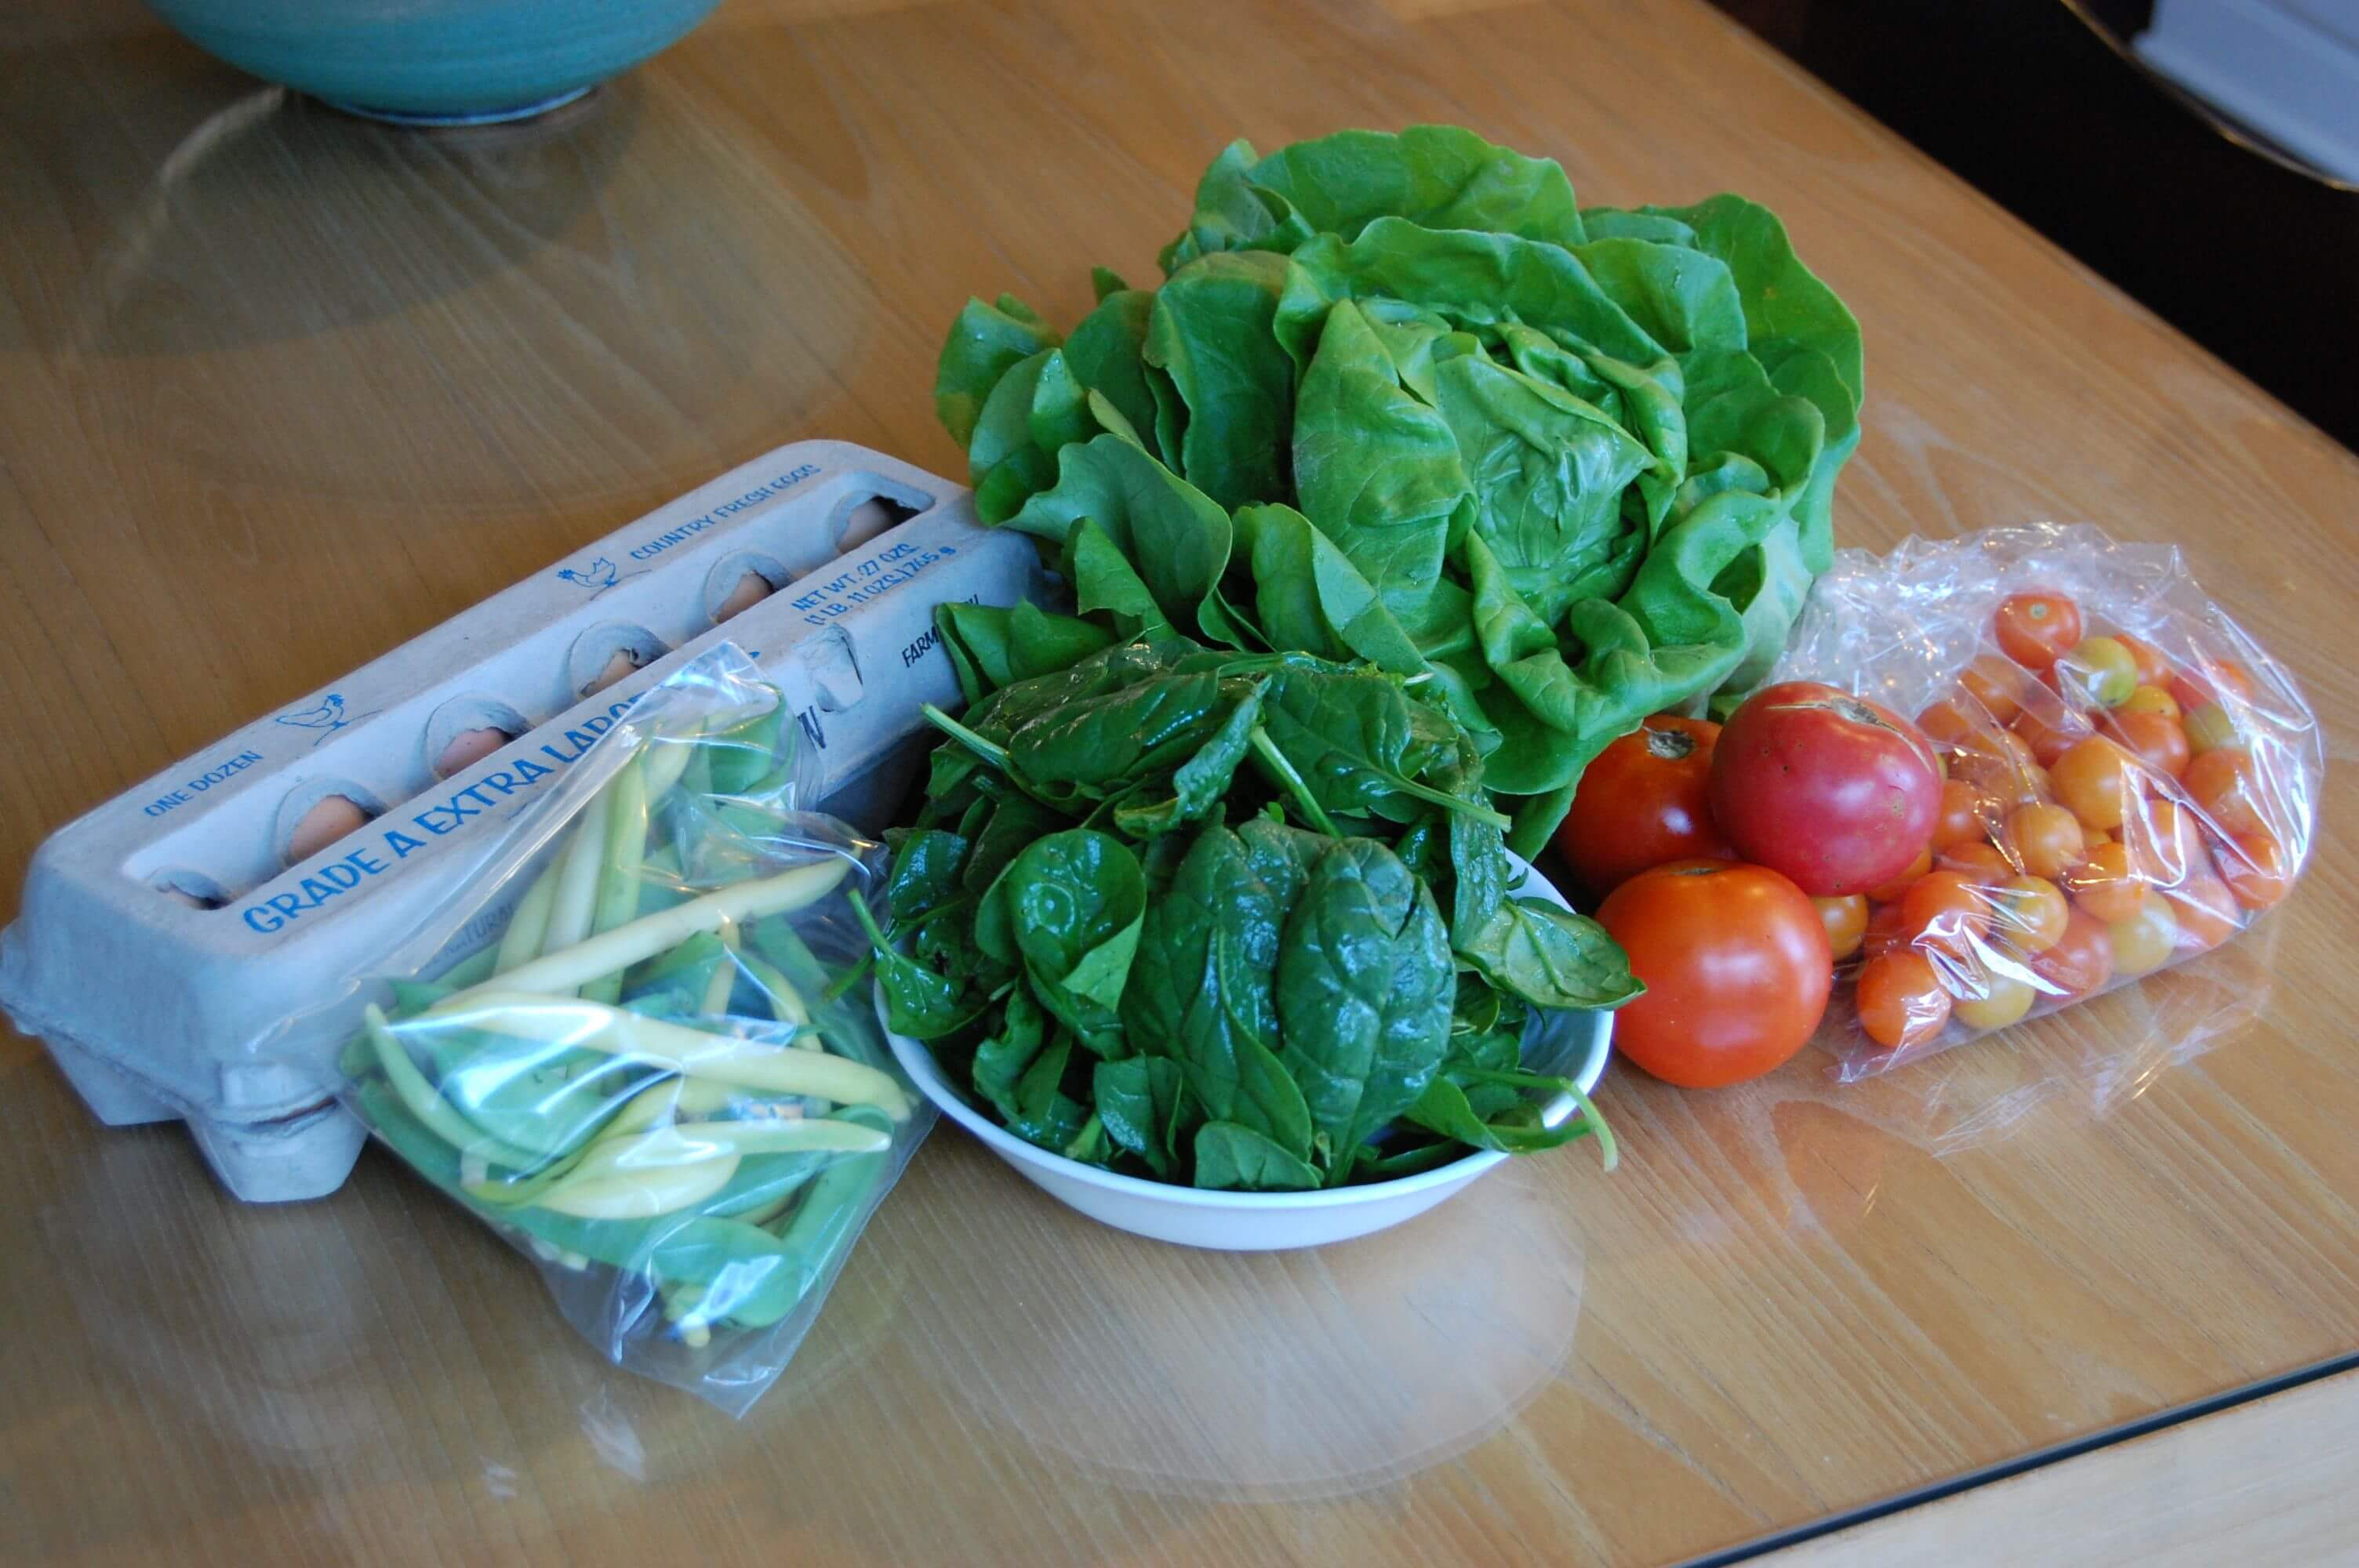 Fresh produce from the farmers market that includes eggs, lettuce, spinach, tomatoes, and green beans.